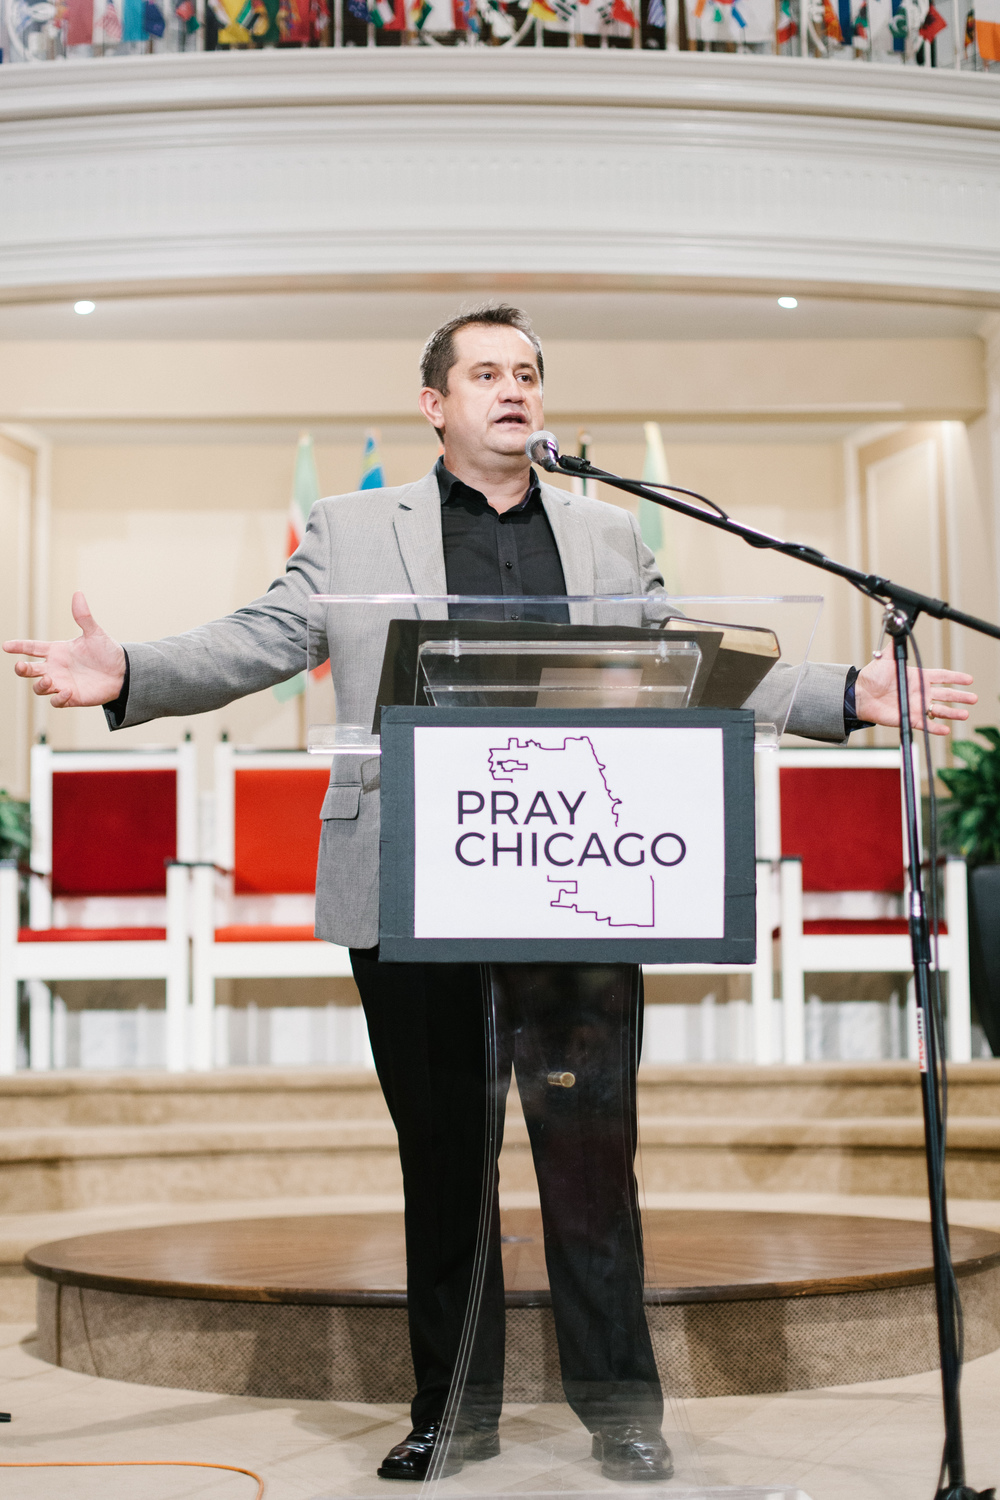 praychicago-11.jpg